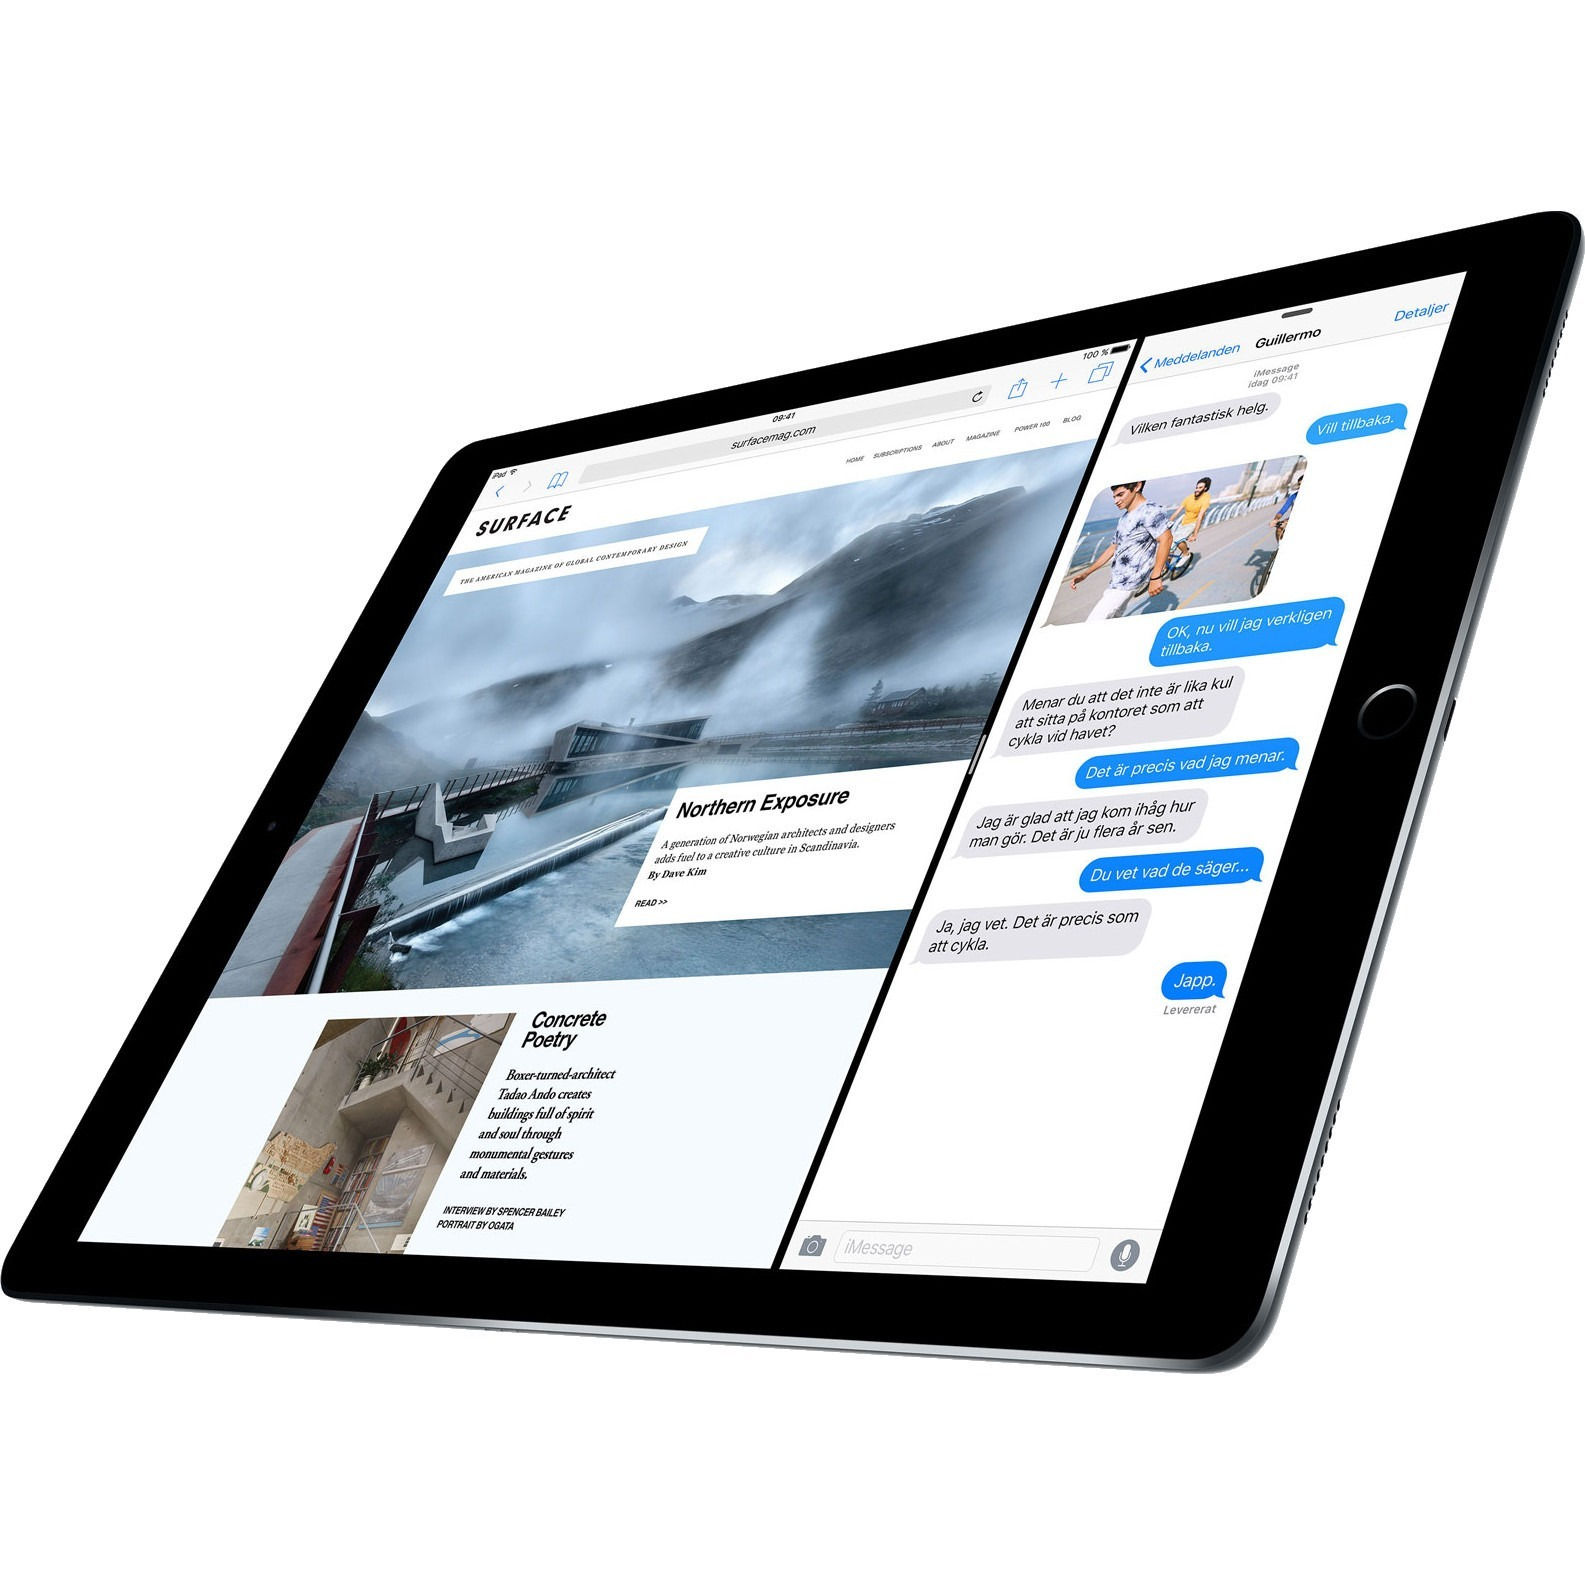 Apple iPad Pro Tablet - 32.8 cm 12.9inch - Apple A9X - 128 GB - iOS 9 - 2732 x 2048 - Retina Display - 4G - CDMA2000, GSM Supported - Space Gray - Wireless LAN - Blue